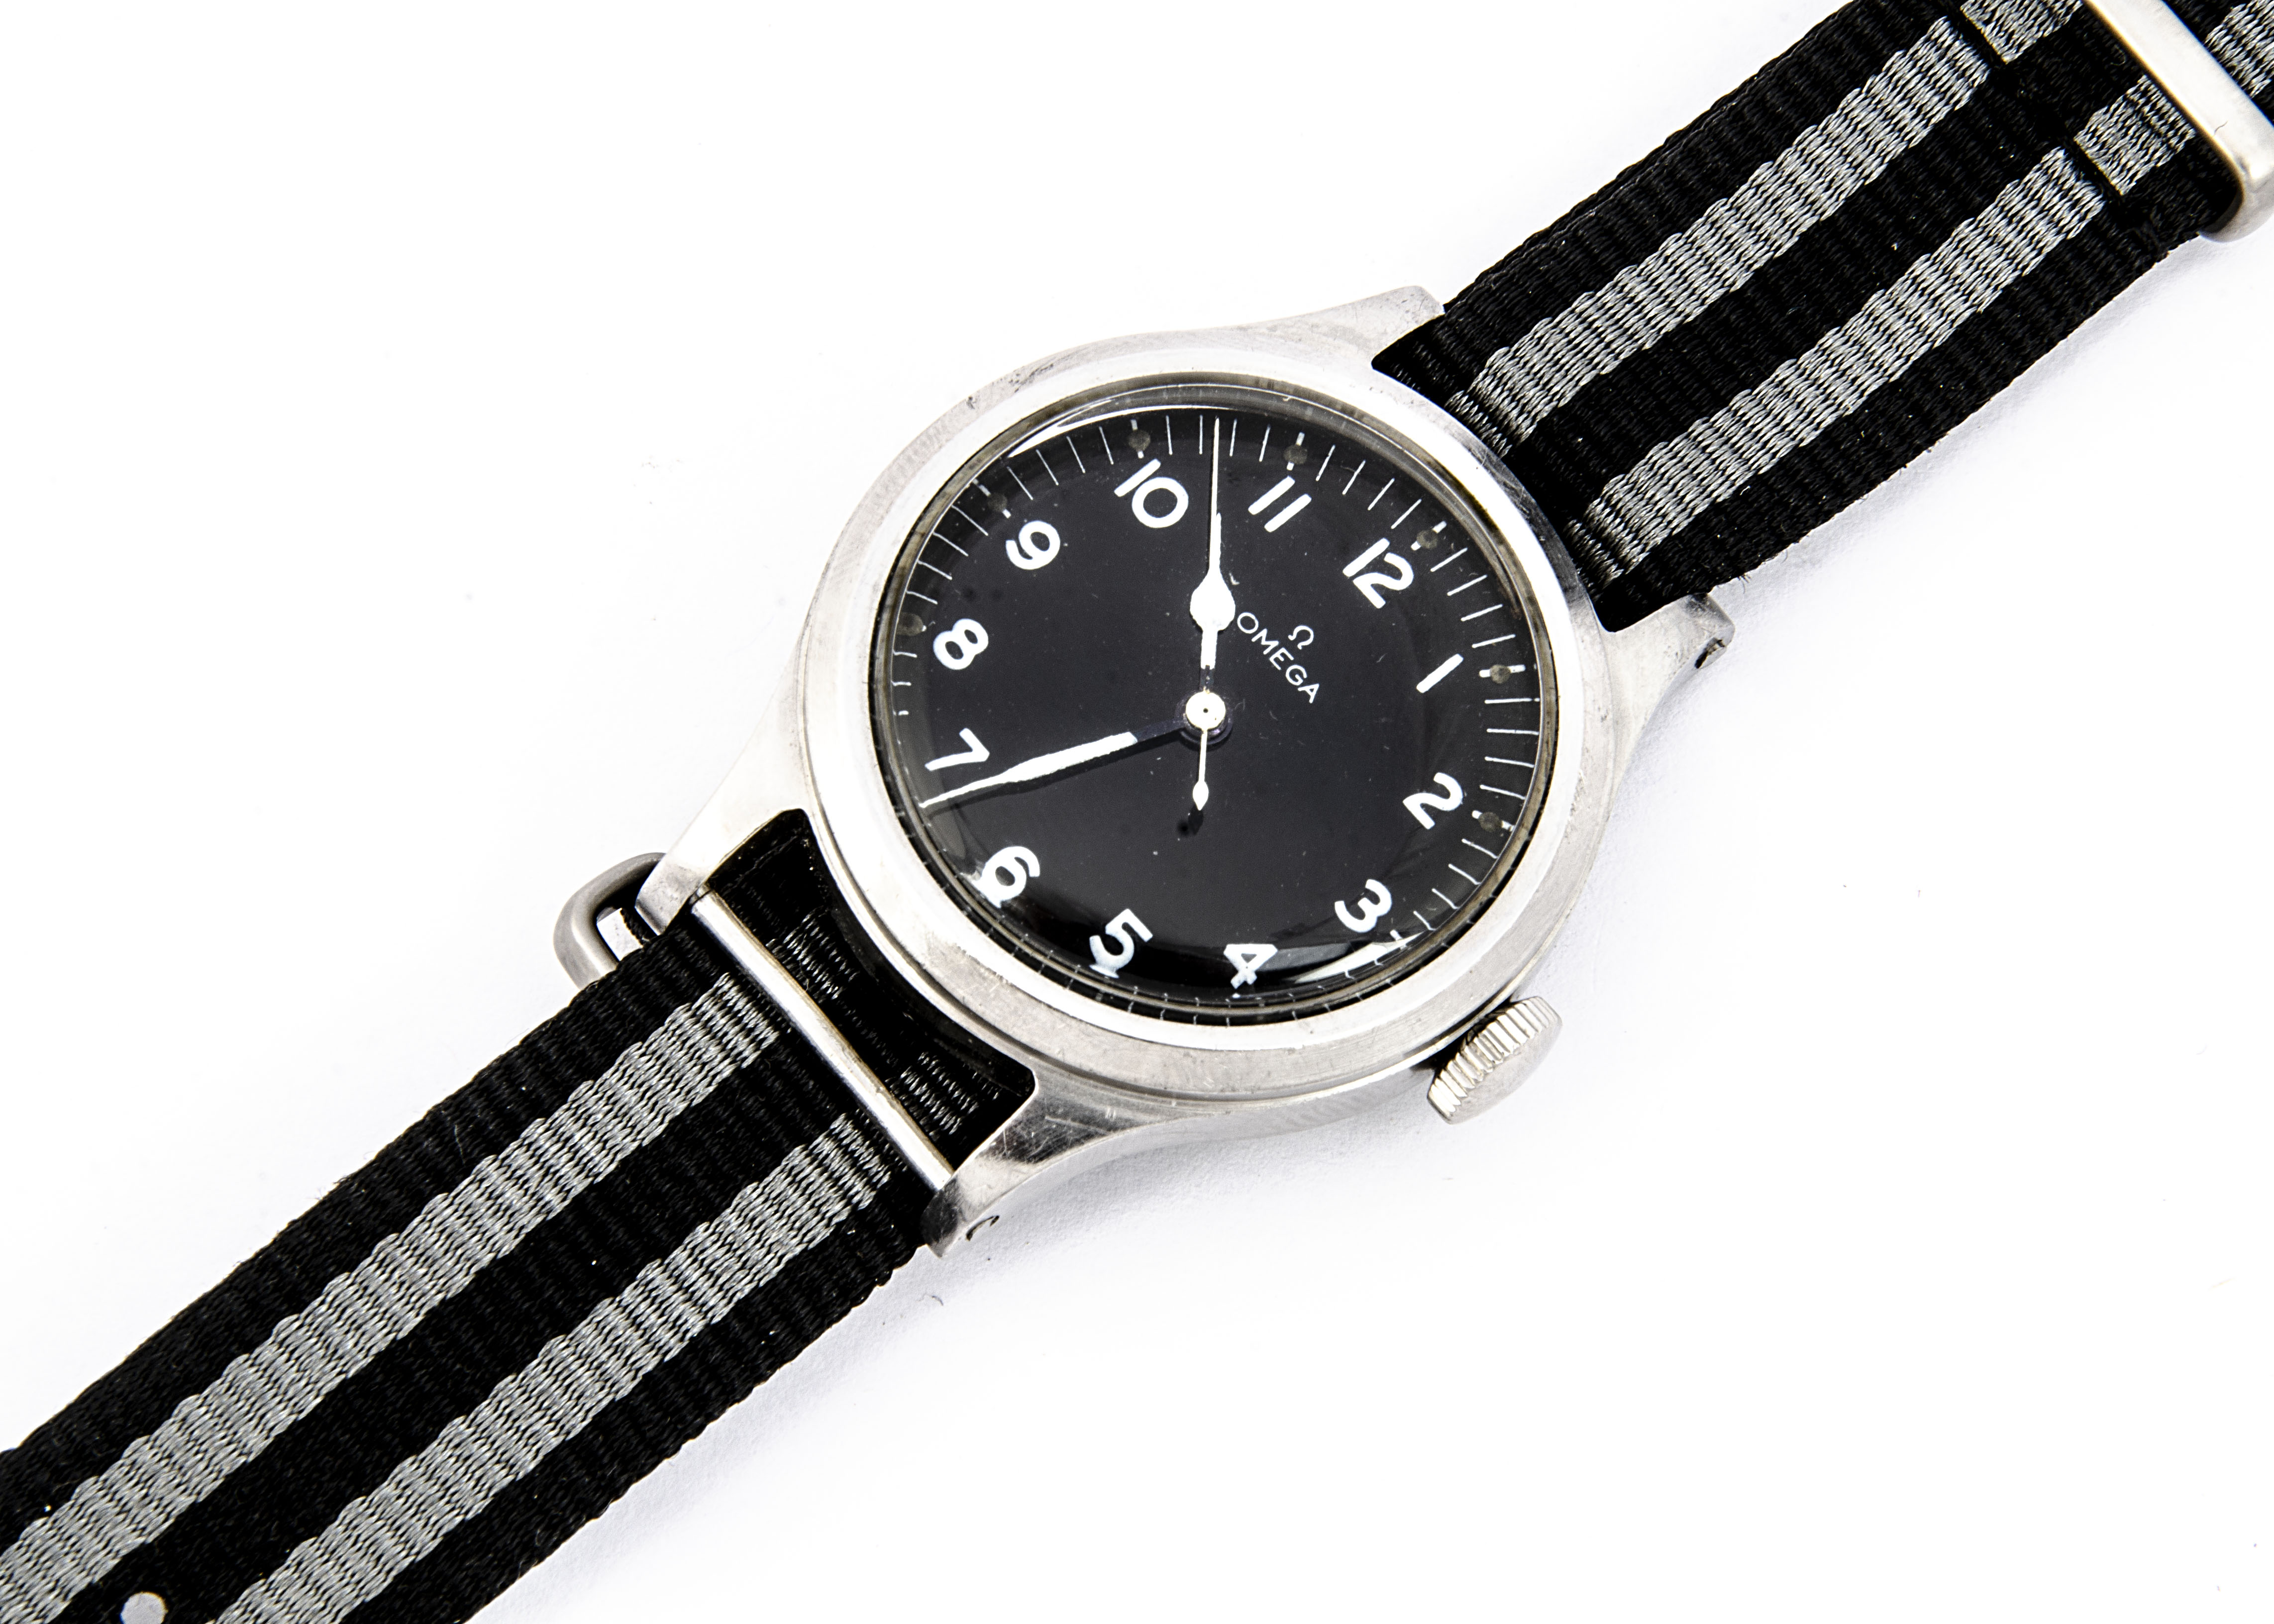 A 1956 Omega Military Royal Air Force stainless steel wristwatch, 36mm case, running, black dial